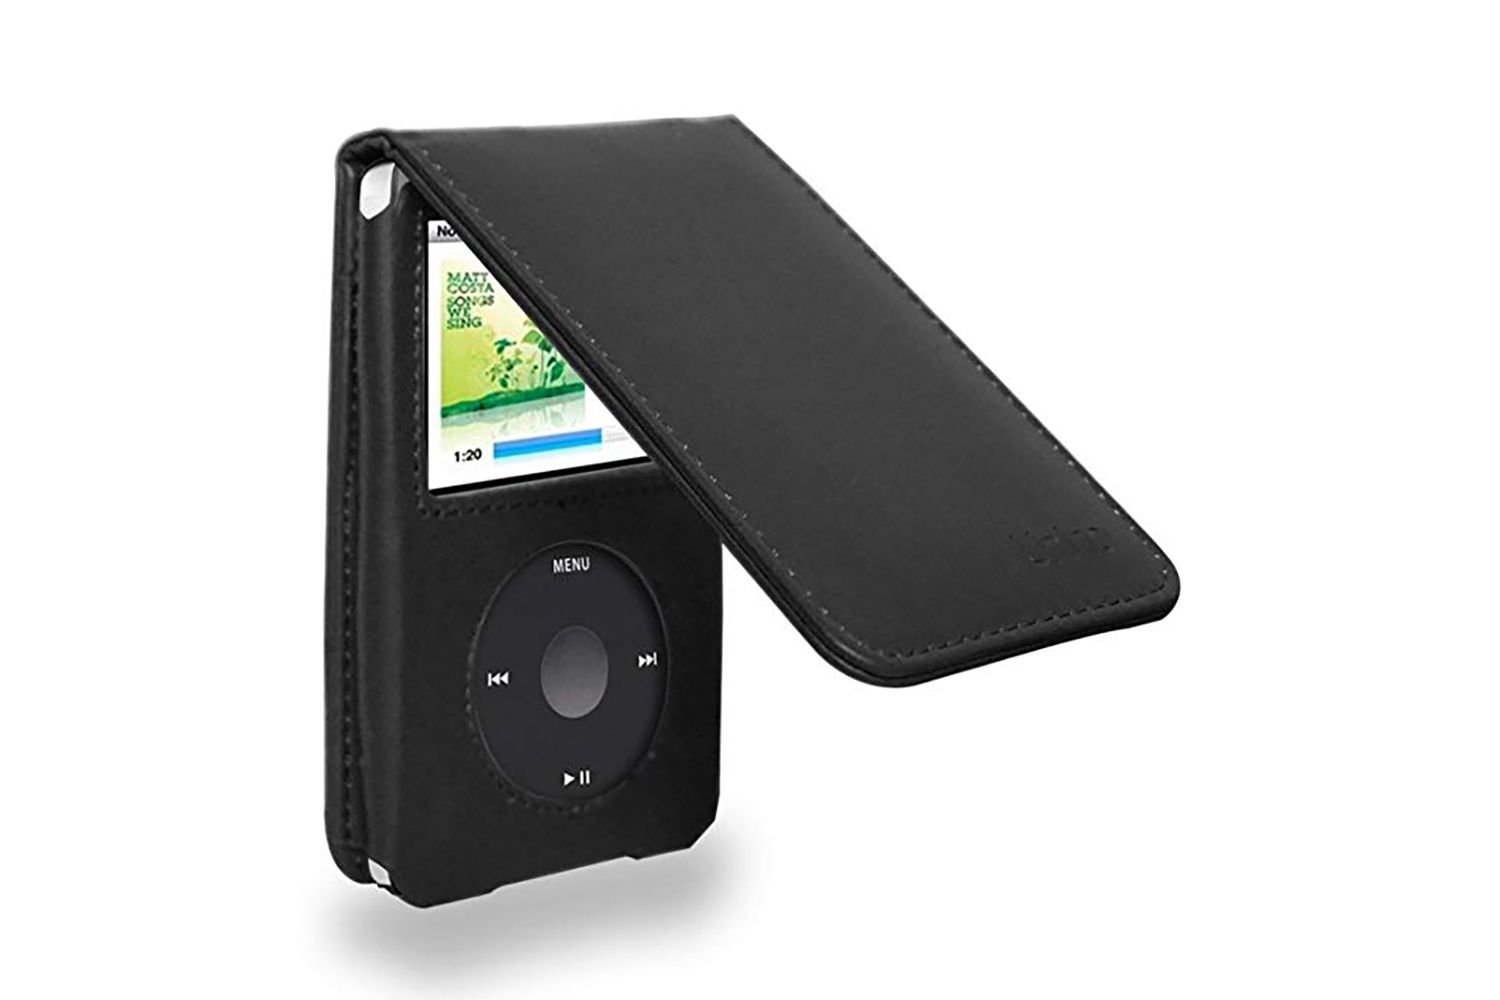 Unicorn Innovation's iPod Classic Leather Flip Case